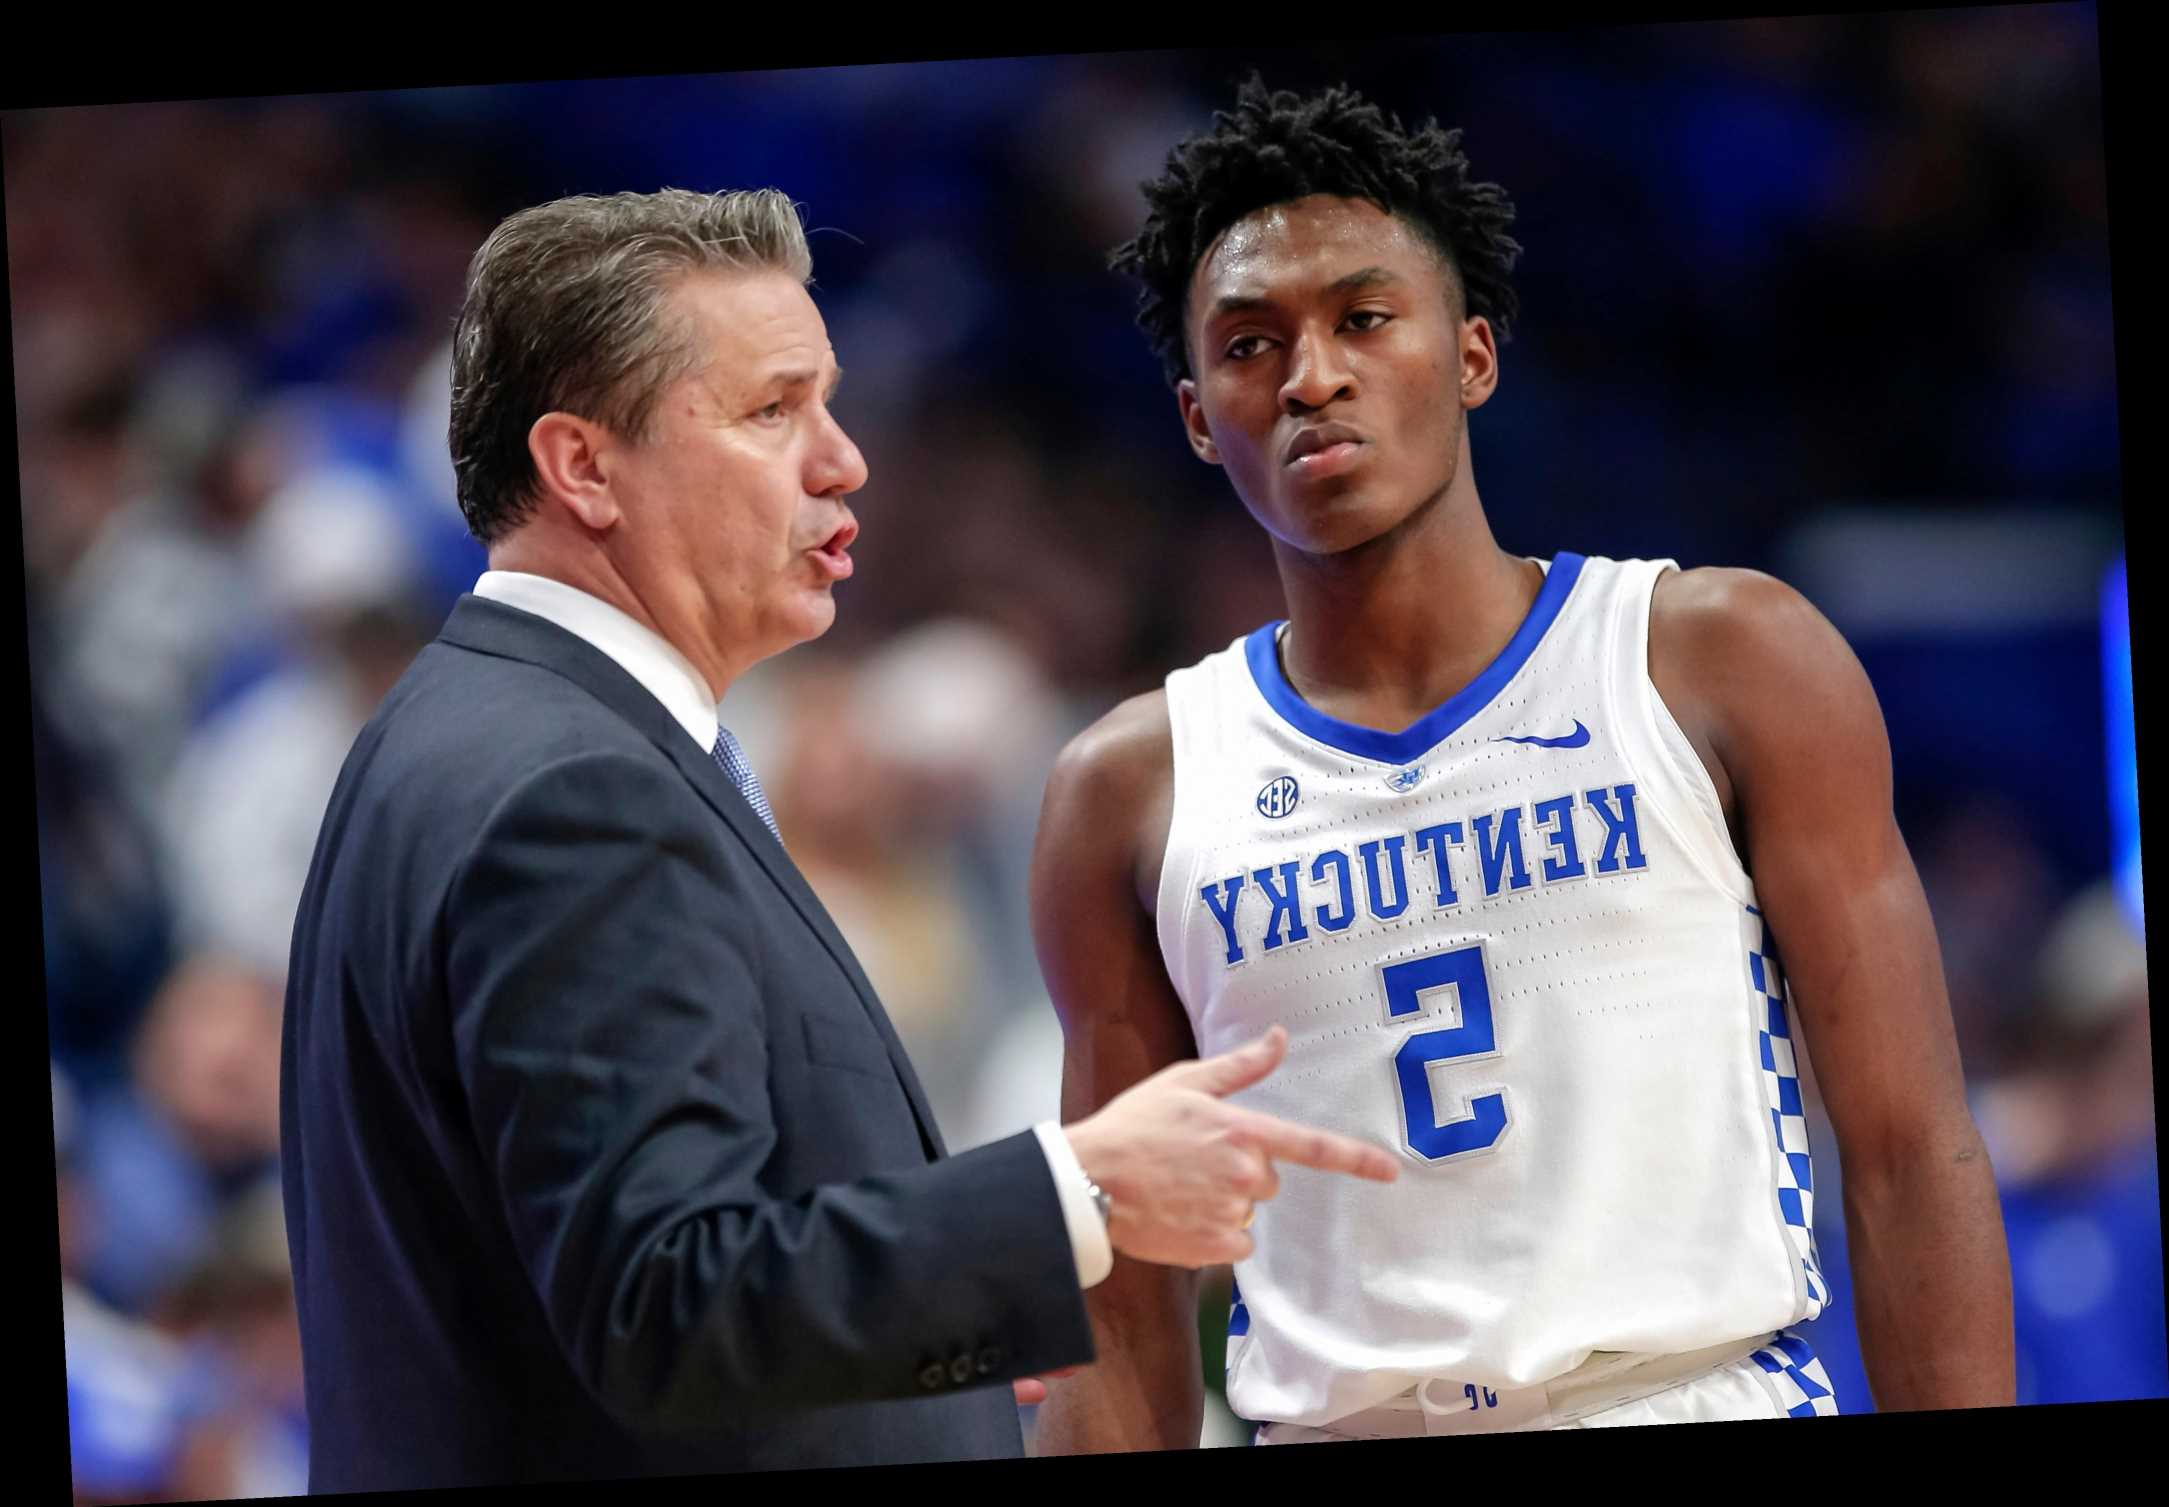 Immanuel Quickley NBA Draft pick bonds Knicks to John Calipari's gospel